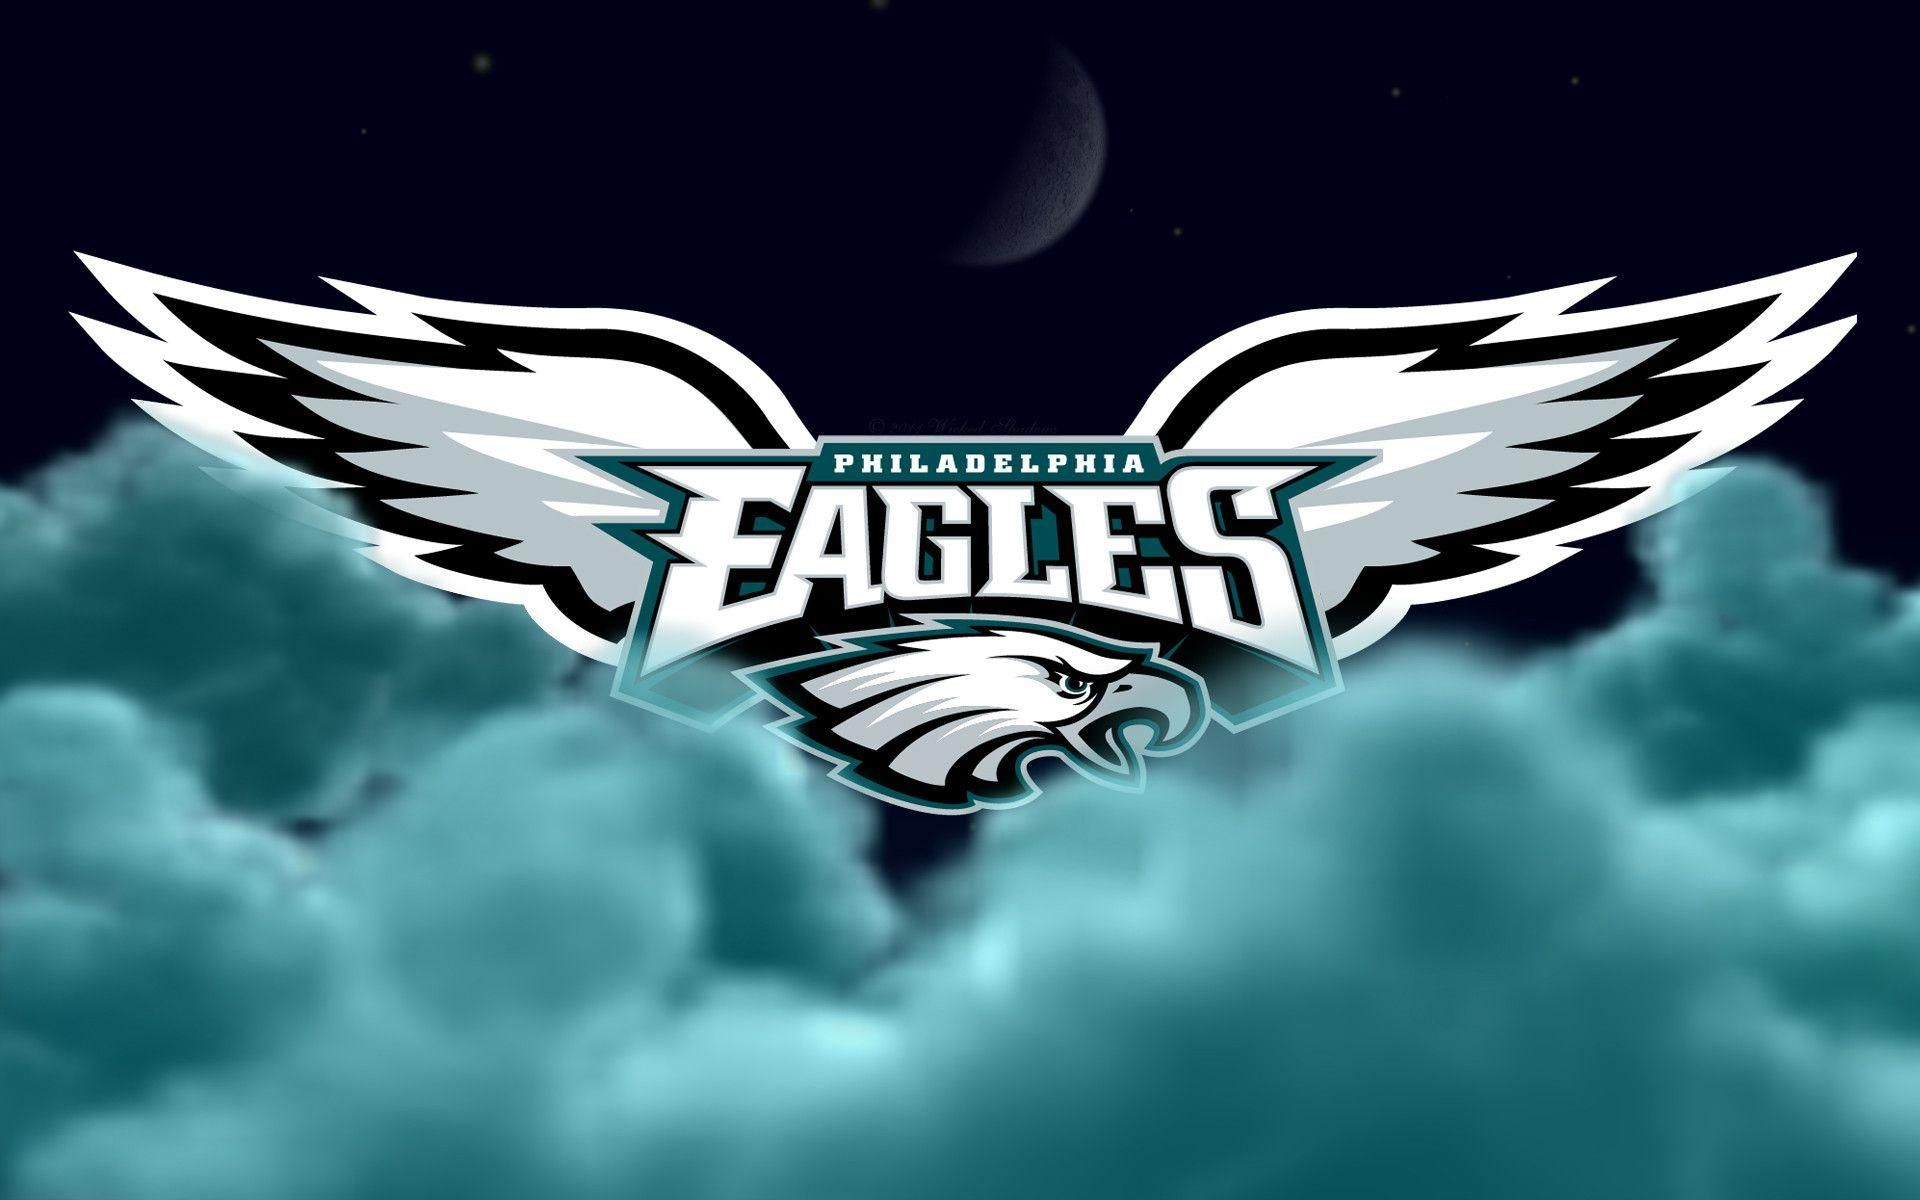 Pin by Tammi on My Philly Eagles (With images